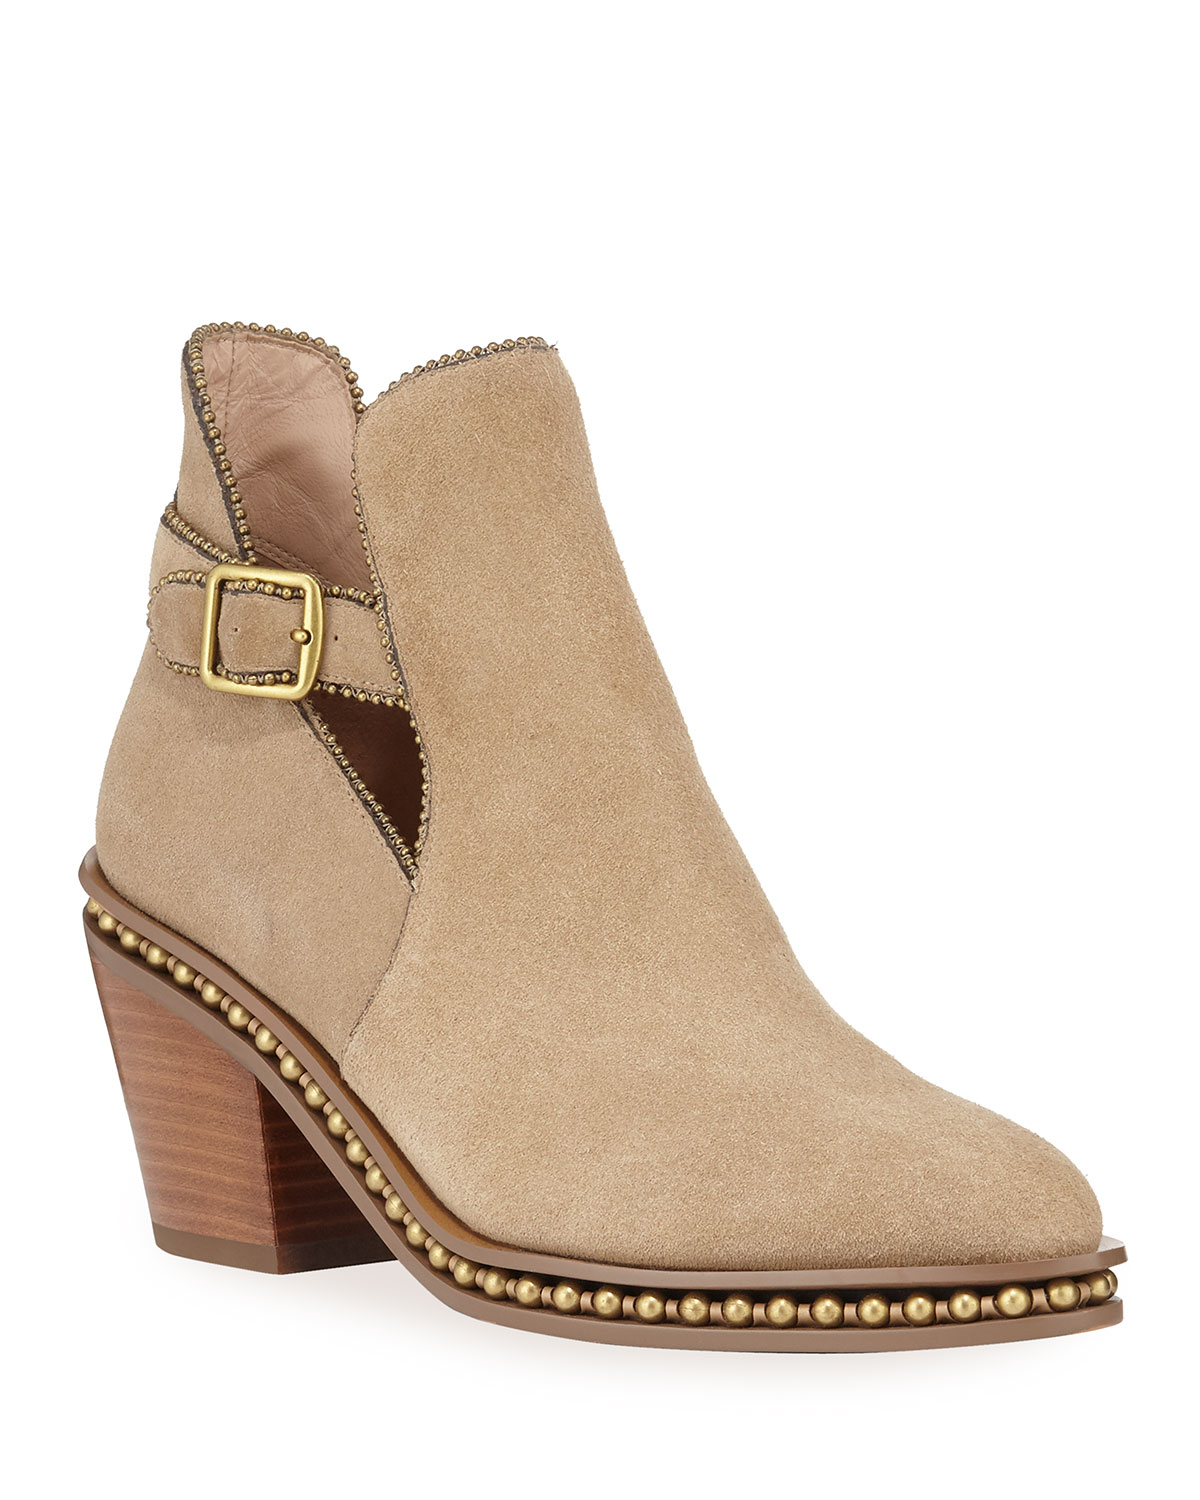 Pipa Suede Bead Chain Western Booties by Coach